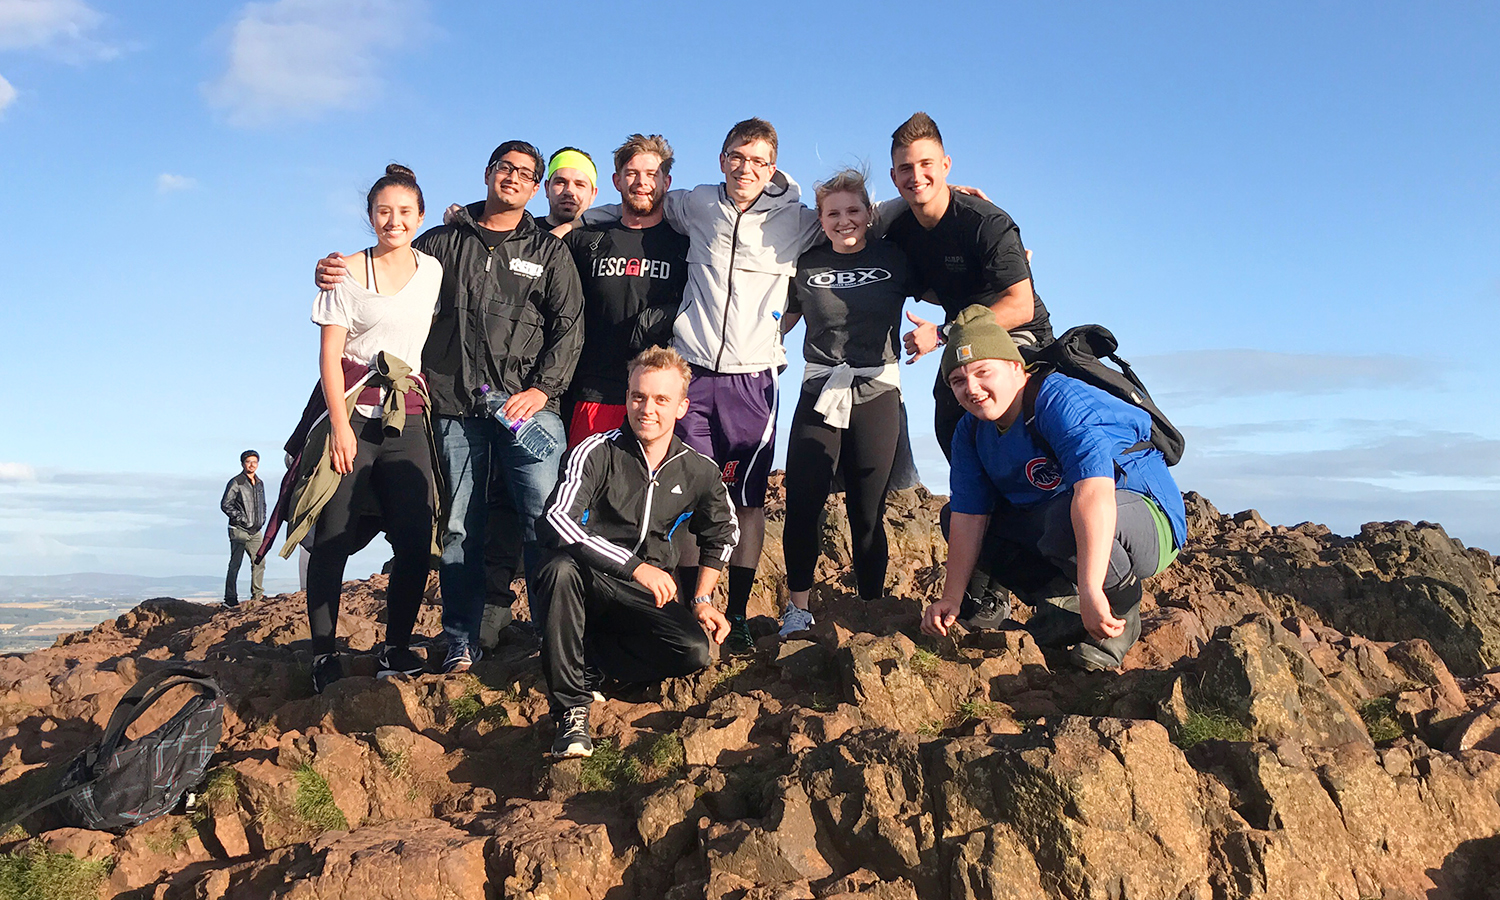 HWS students studying in Edinburgh, Scotland gather for a photo at the top of Arthur's Seat.